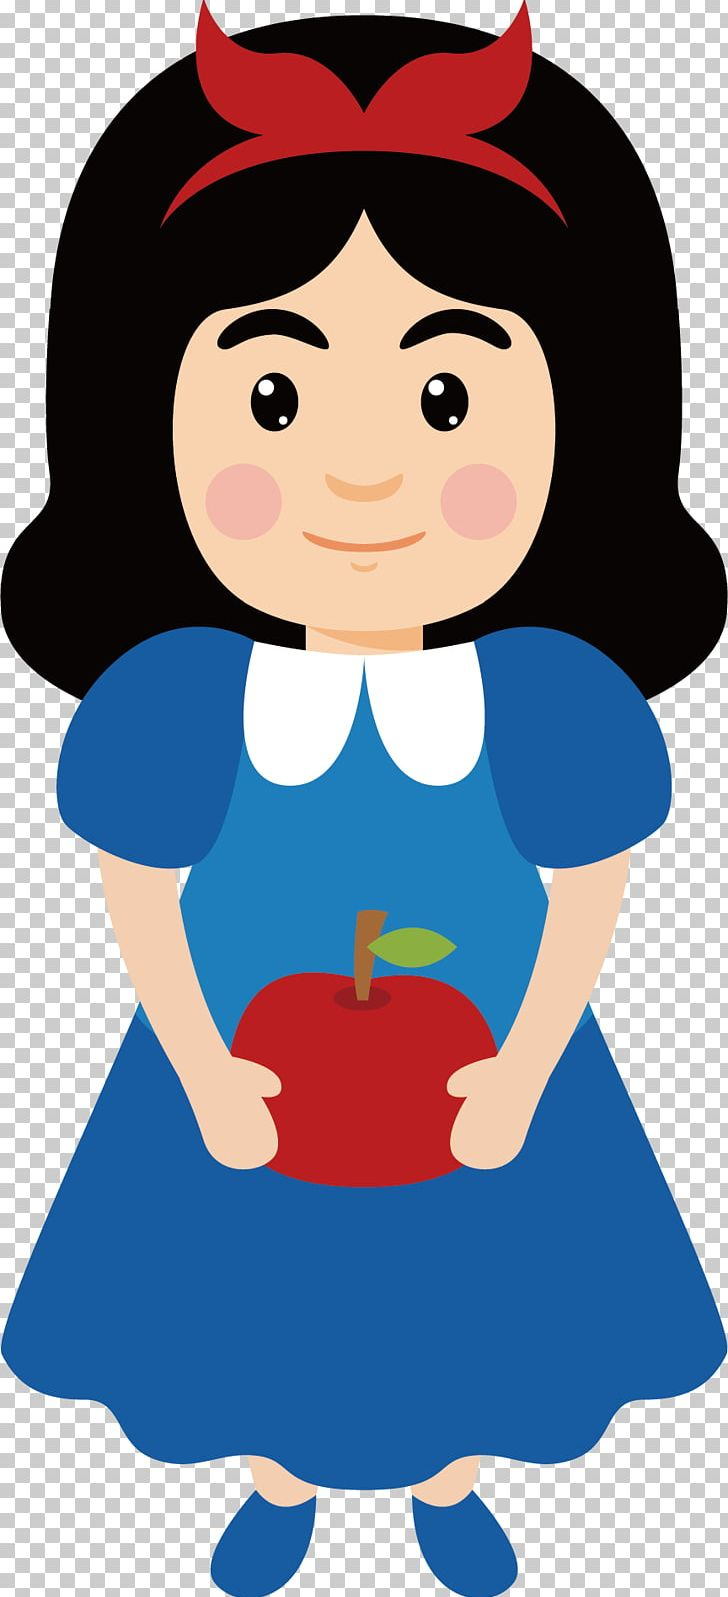 hight resolution of snow white snow white cartoon png clipart black hair black white bow boy cartoon free png download